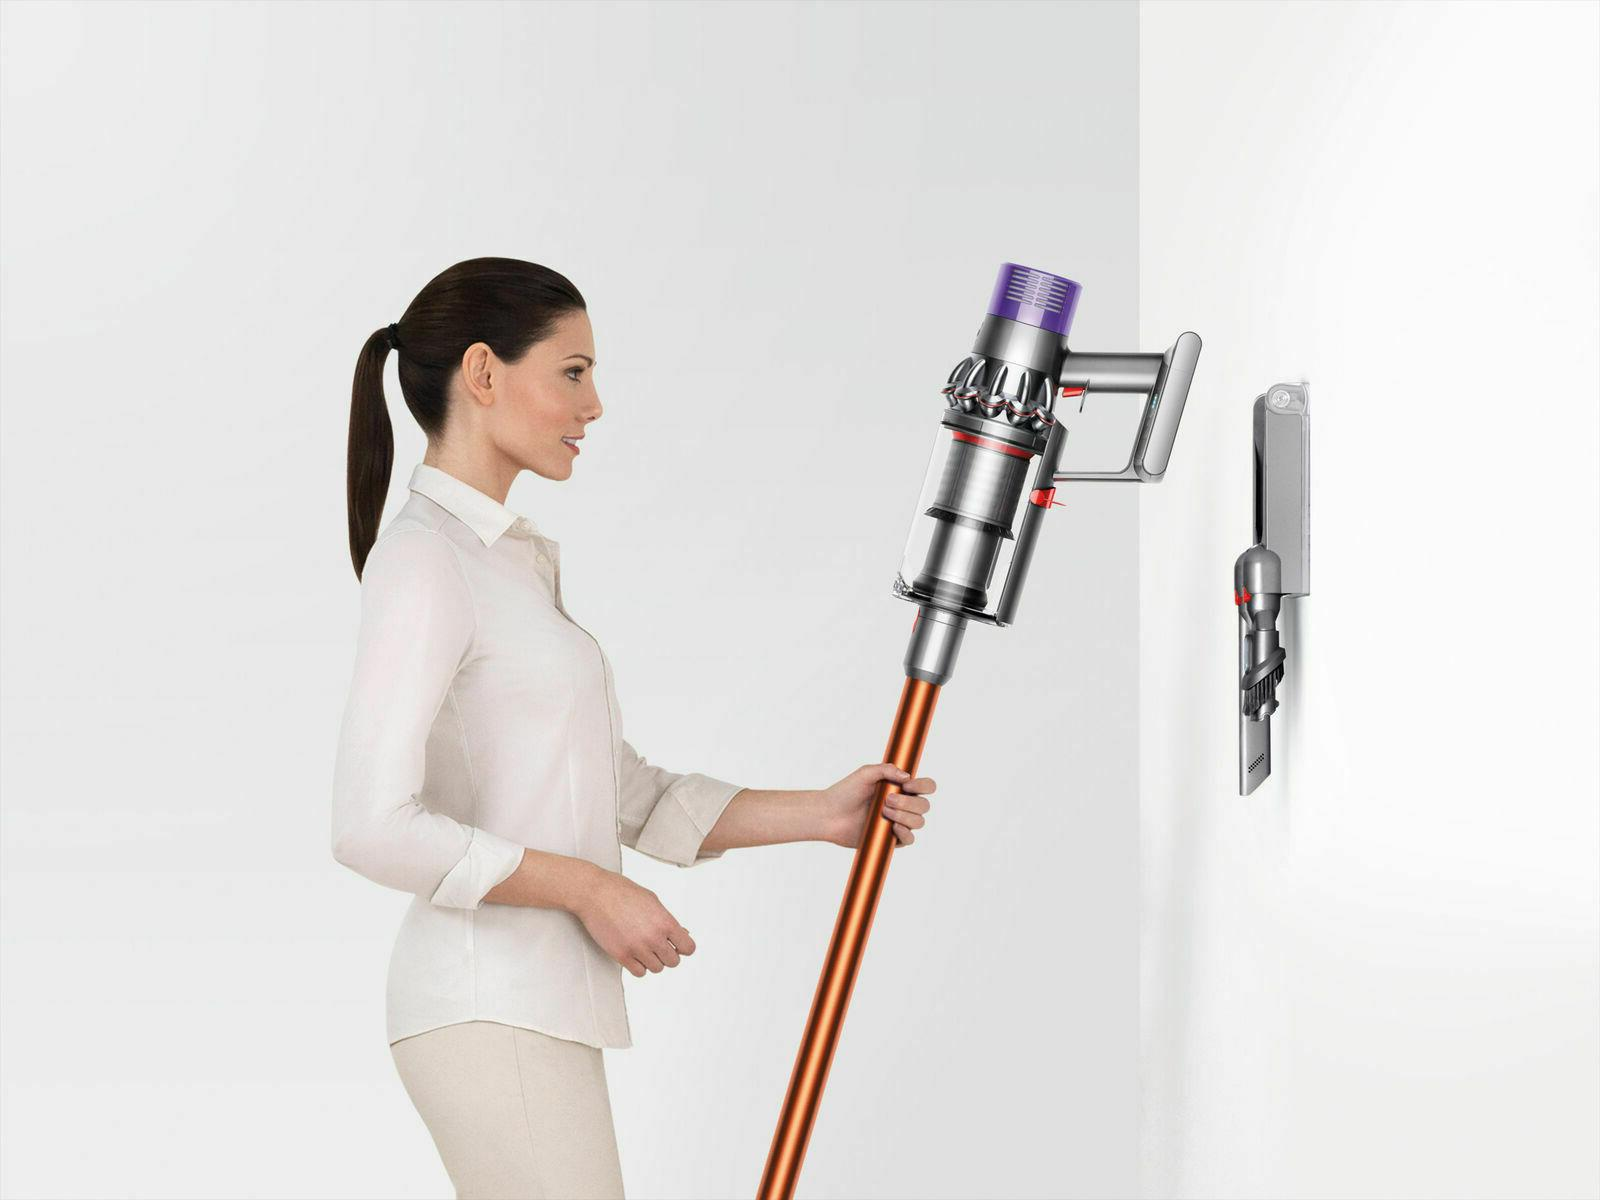 Dyson V10 pro wireless vacuum with